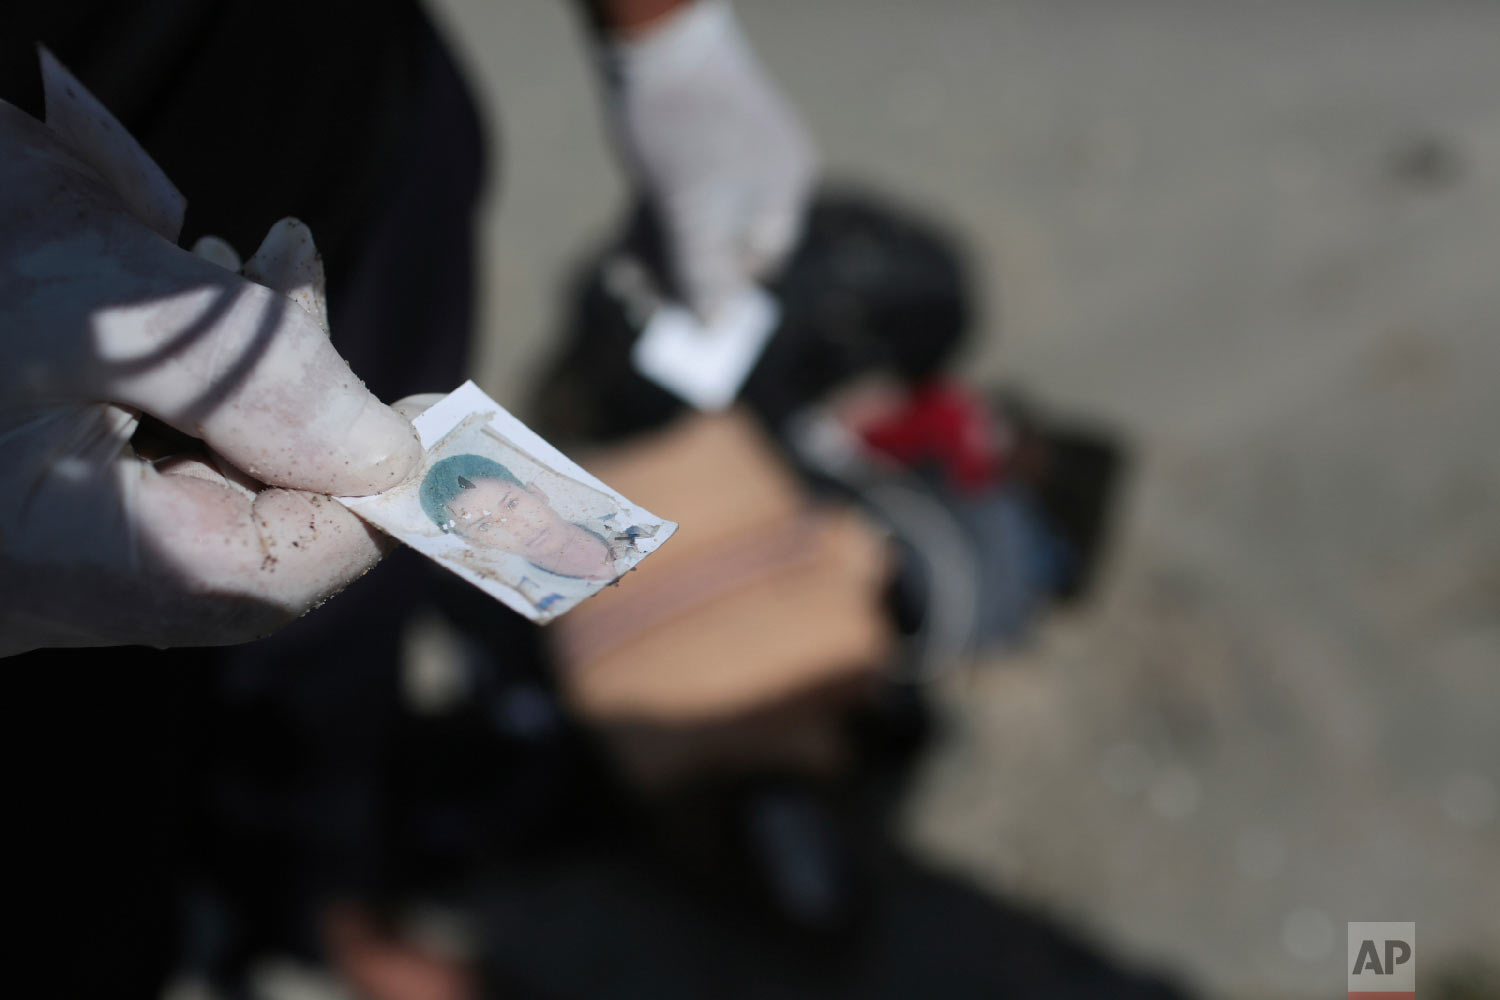 A Libyan Red Crescent worker holds a picture that was found in a bag of belongings that washed up on a beach near the Tunisian Libyan border, not far from Zuwarah, 102 km (63 mi) west of Tripoli, Libya, Saturday, Sept. 12, 2015.  (AP Photo/Mohamed Ben Khalifa)